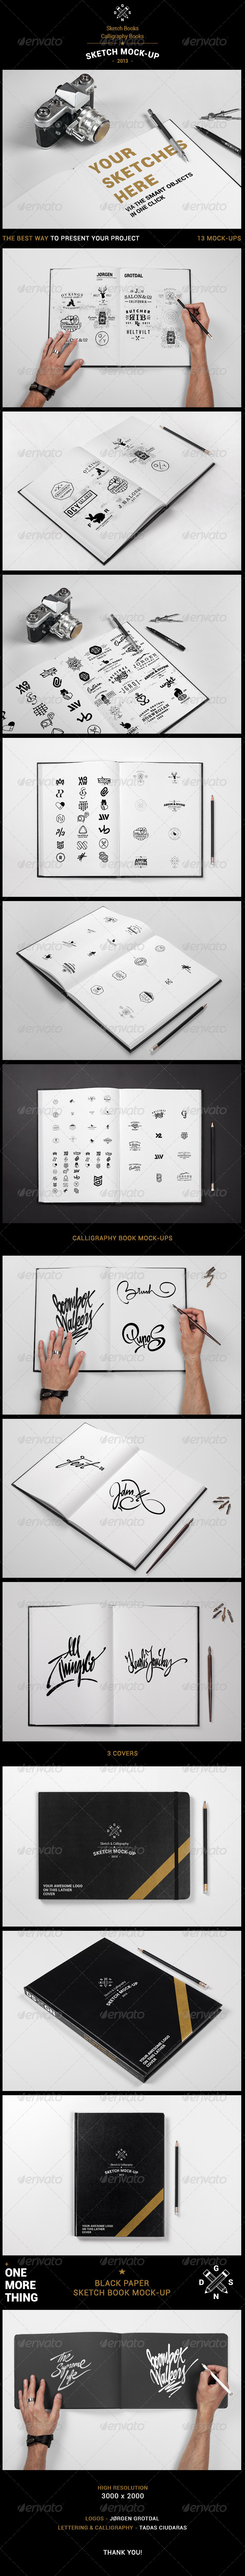 GraphicRiver Sketch Book Calligraphy Book Mock-up 5002810